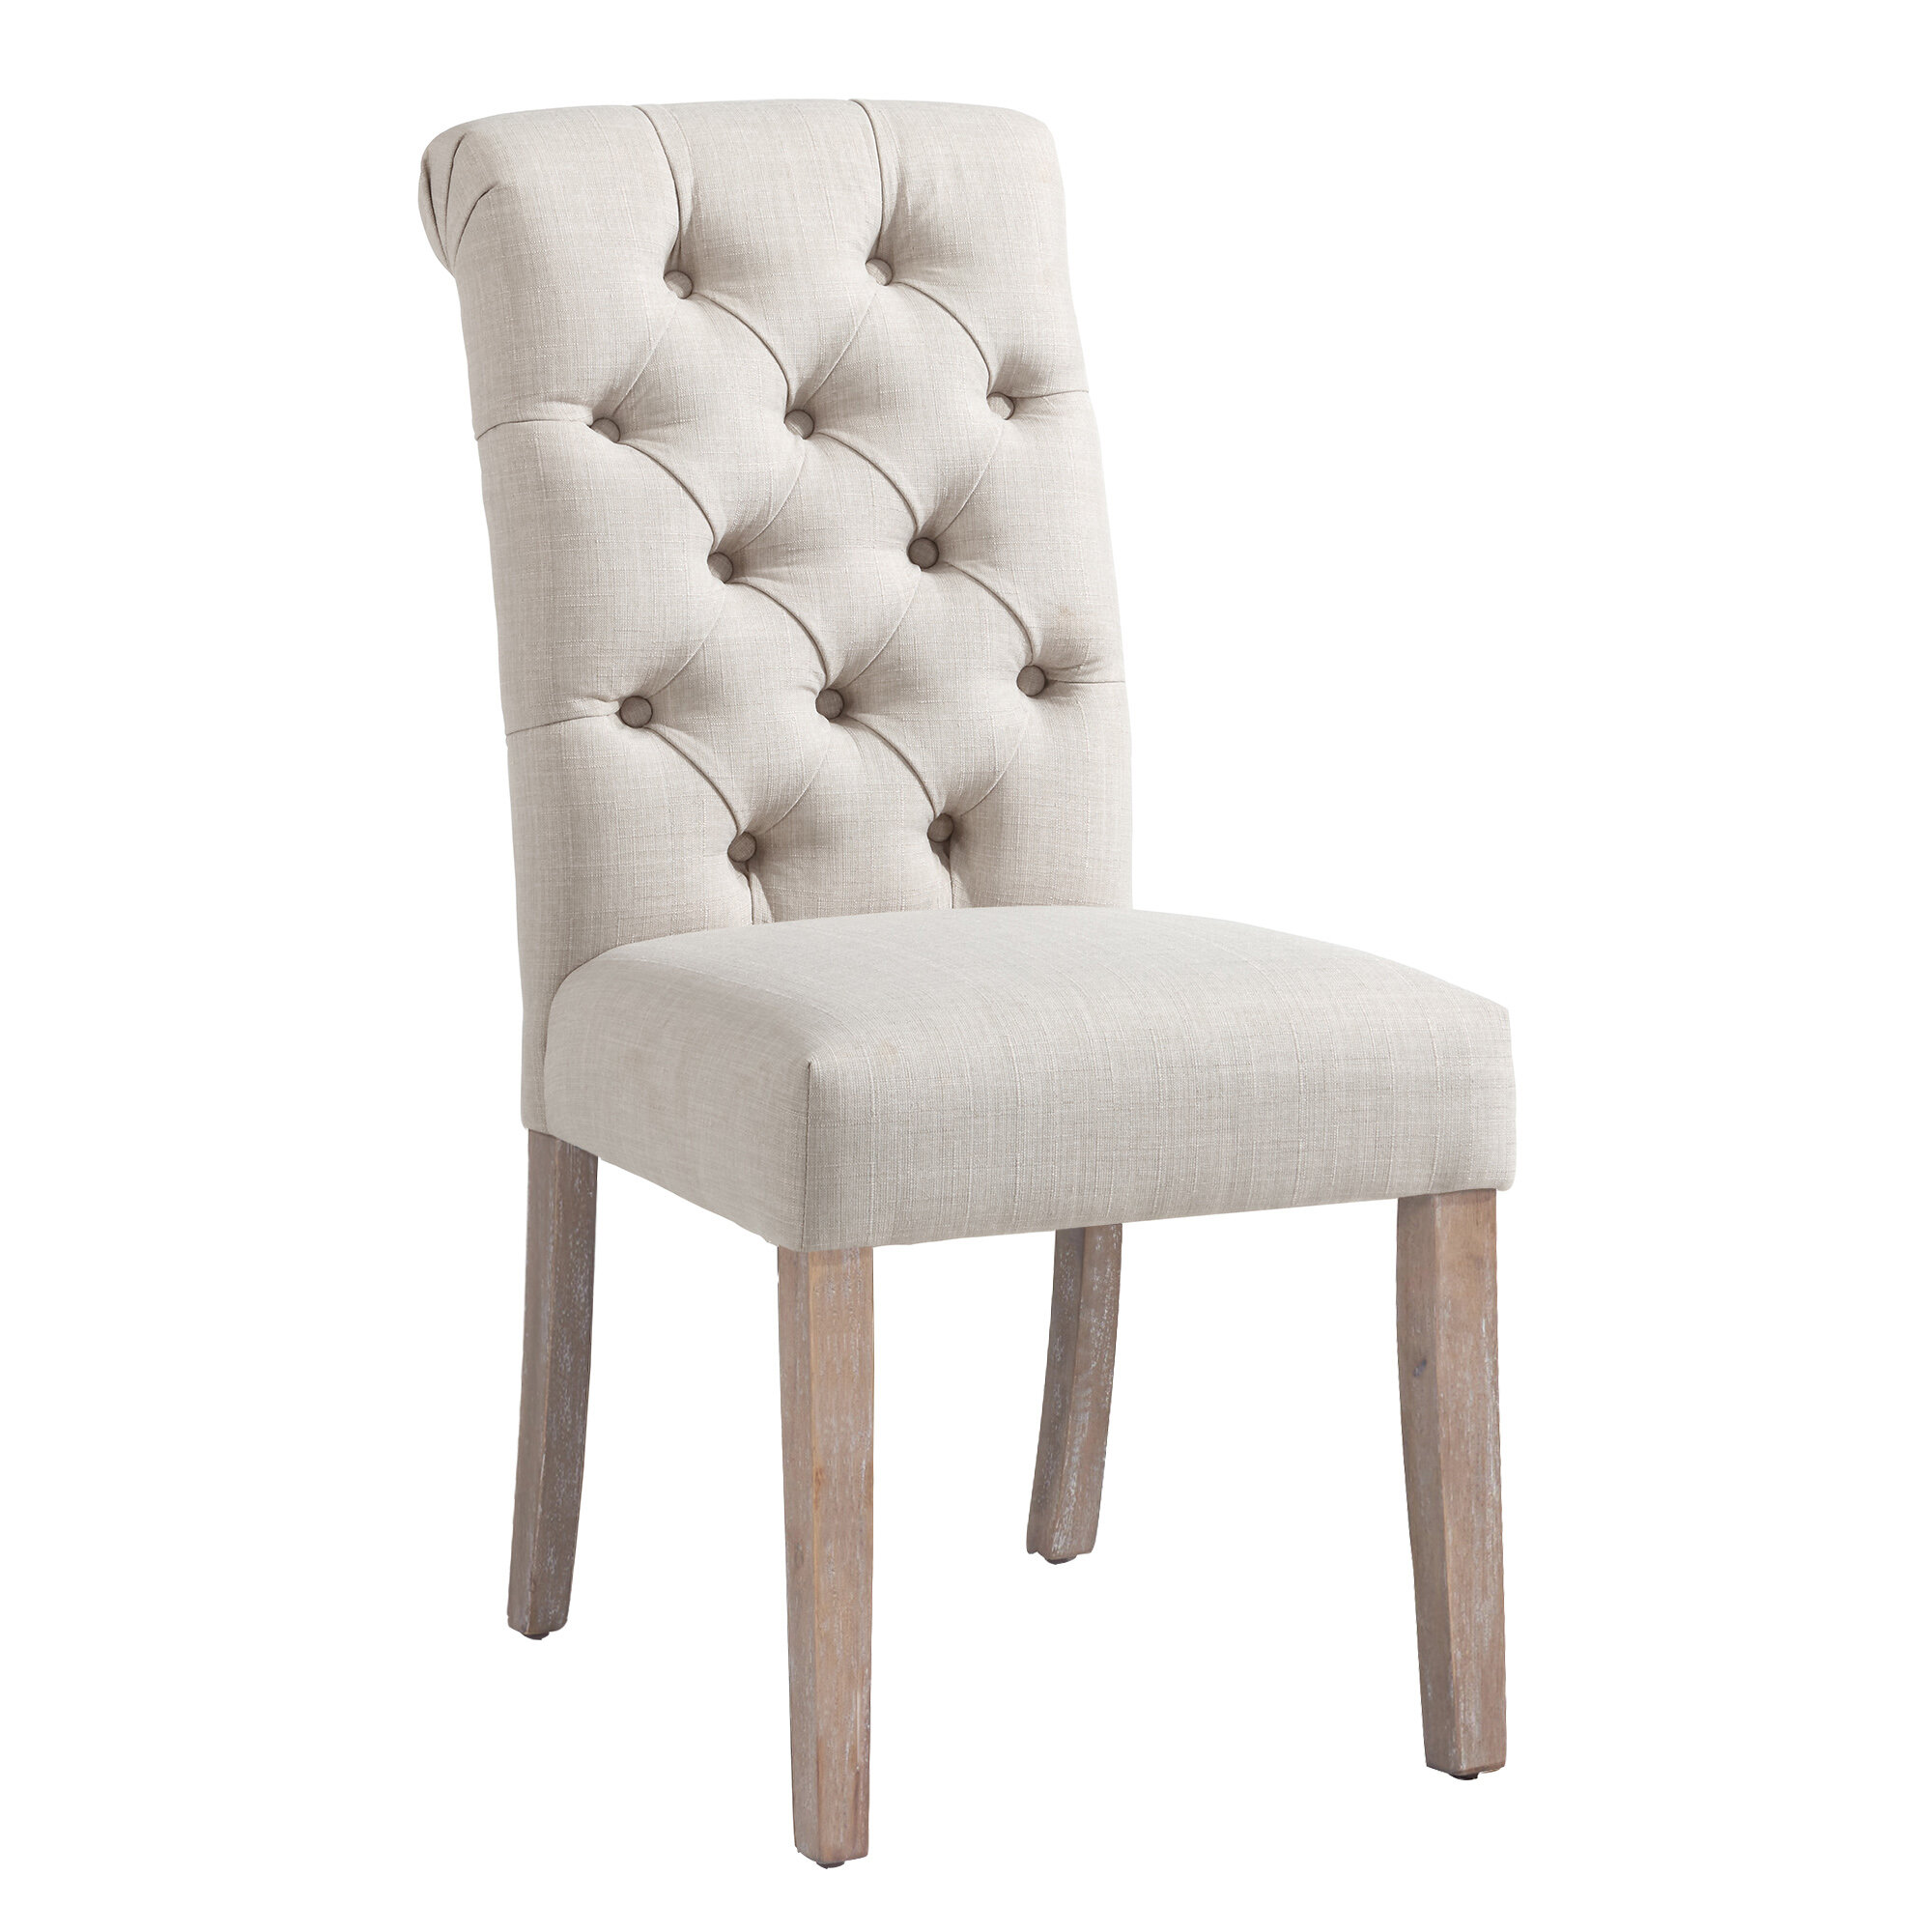 majestic looking gray upholstered dining chairs. Bathilde Upholstered Dining Chair  Set of 2 One Allium Way Birch Lane